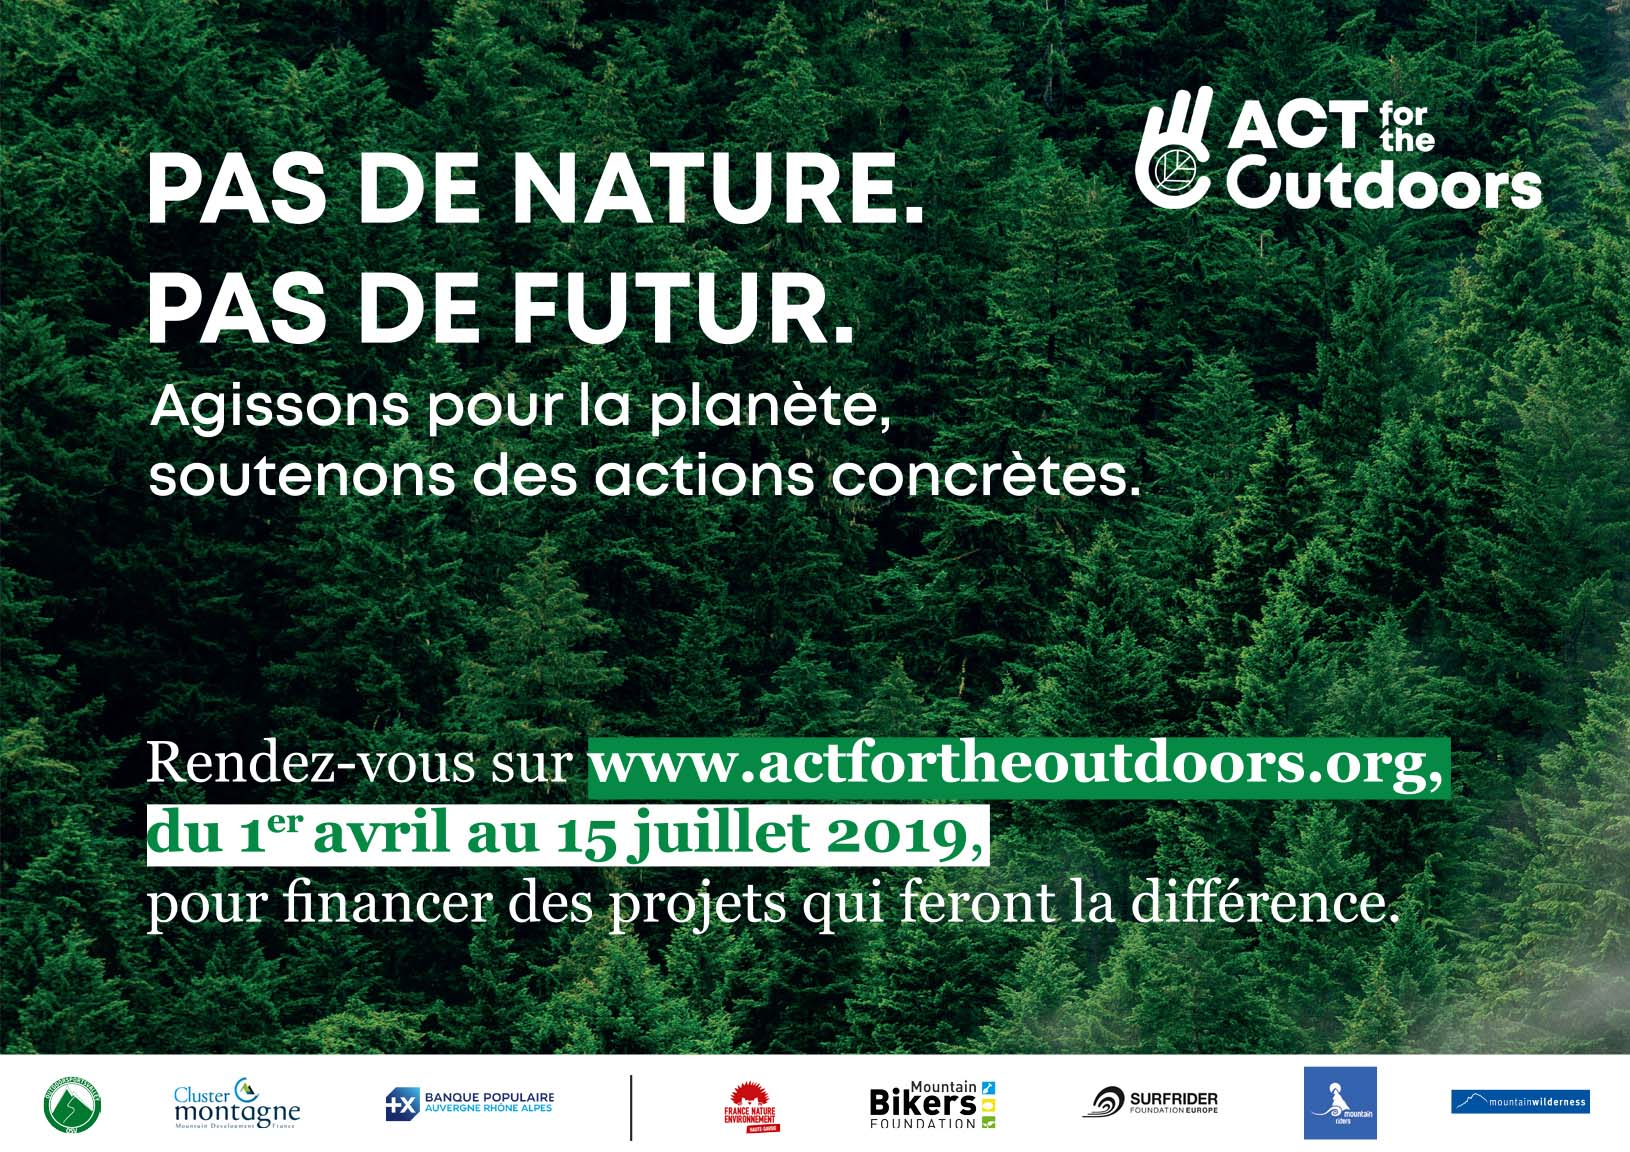 Visuel_ACT for the Outdoors_2019_BD